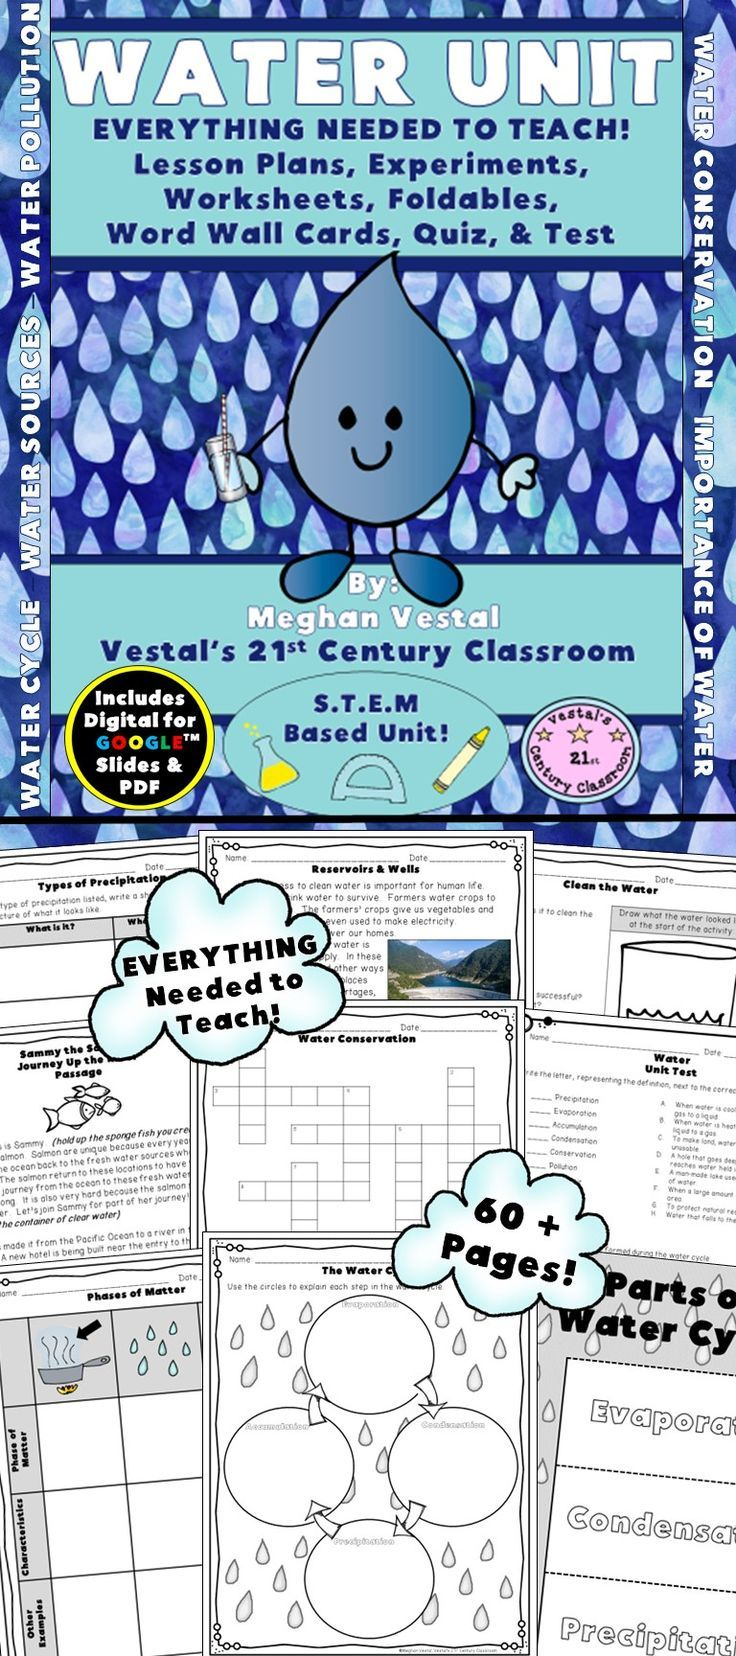 Water is an essential part of life and this unit will provide you with lots of fun activities to teach students about water! EVERYTHING you need to teach a science unit about water can be found in this 2-week unit!